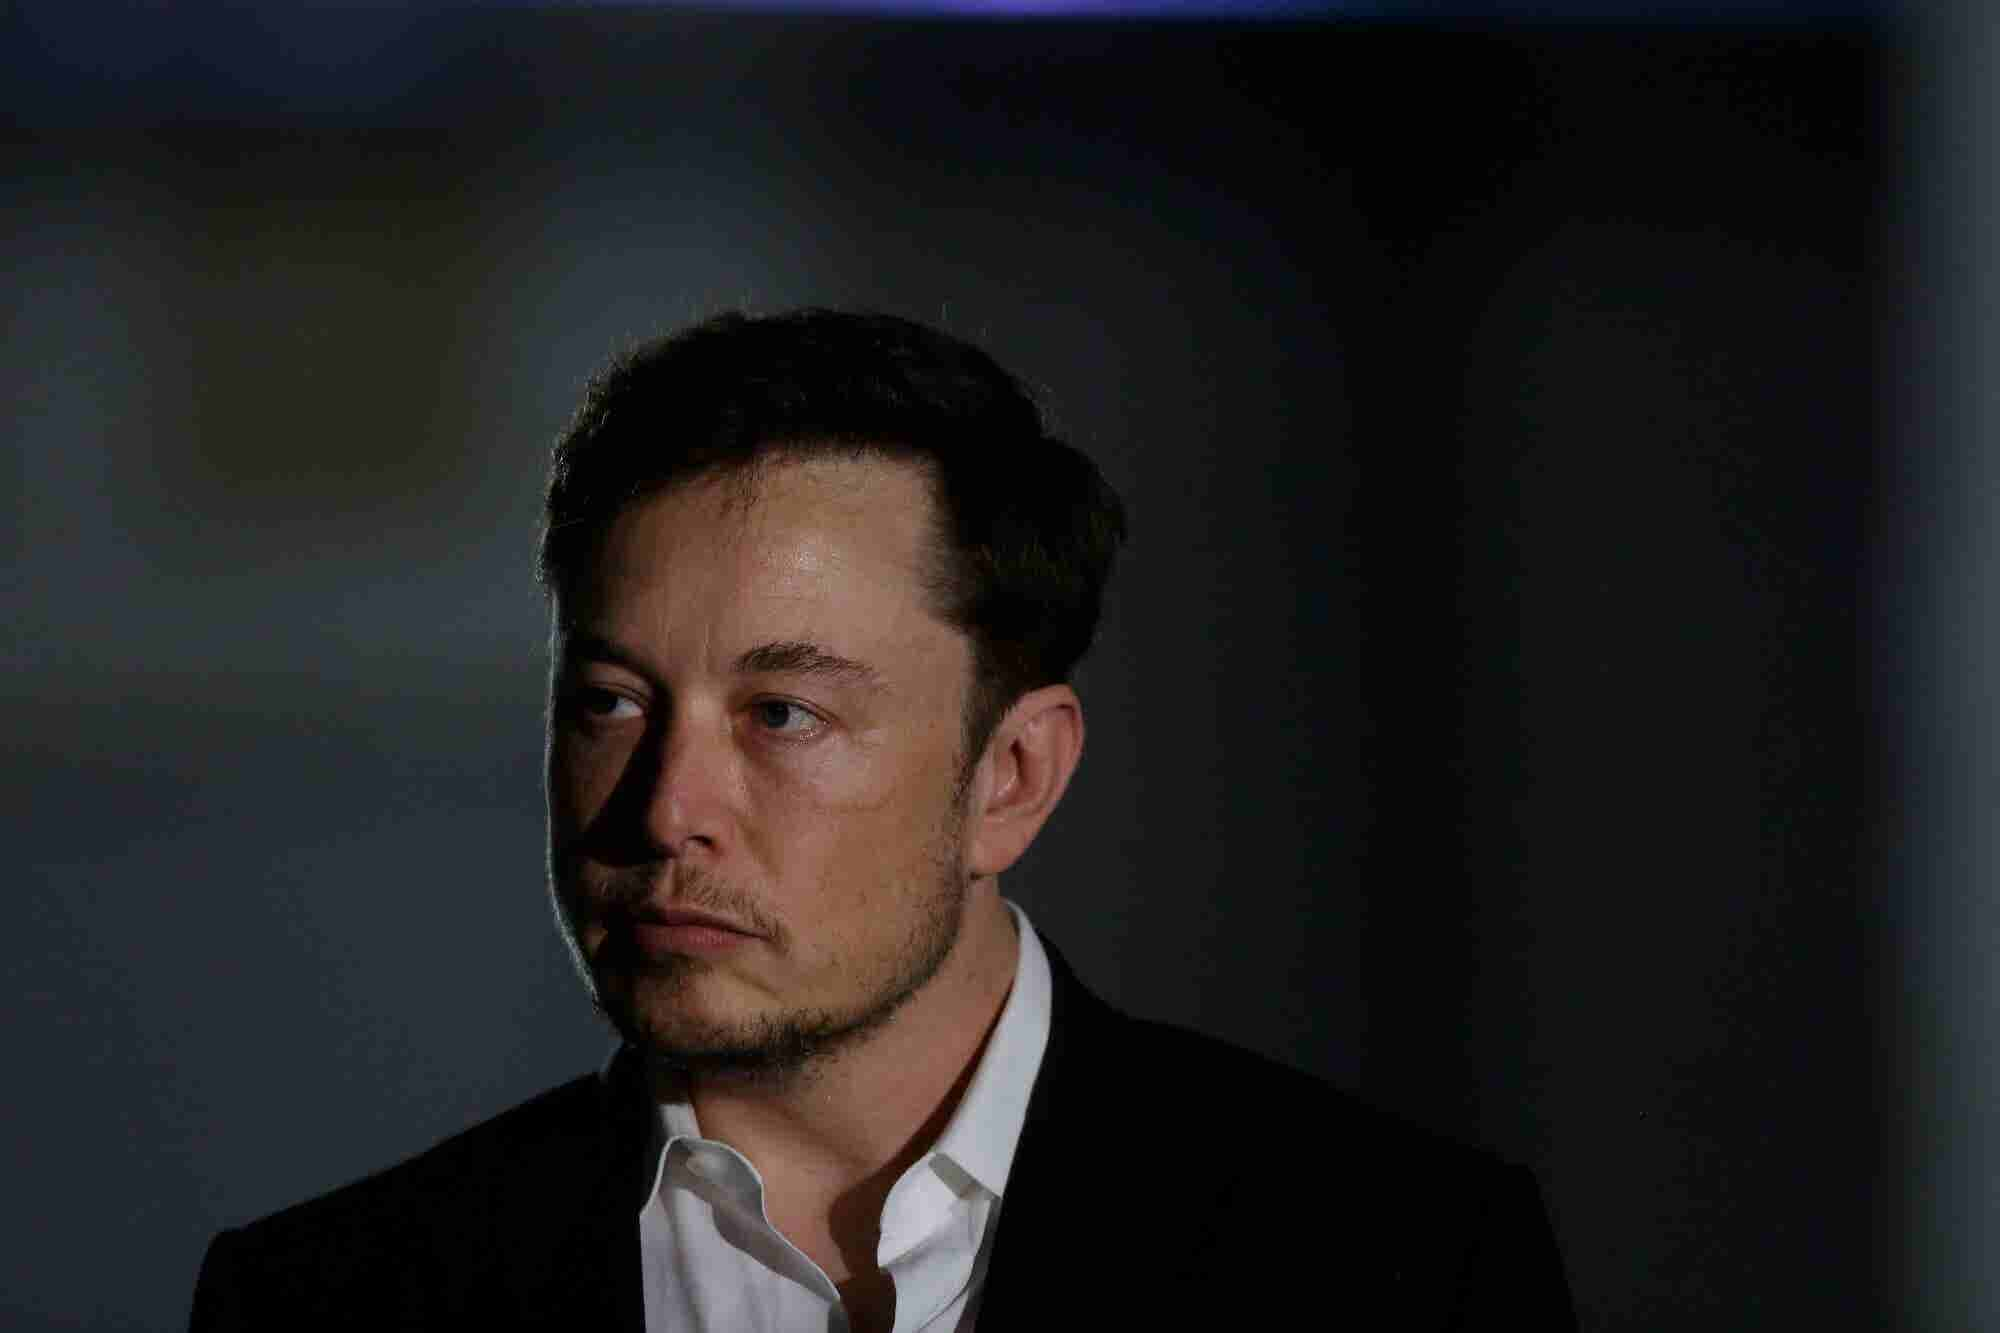 Elon Musk's $20 Million Settlement for Fraud Charges Add to an Increas...